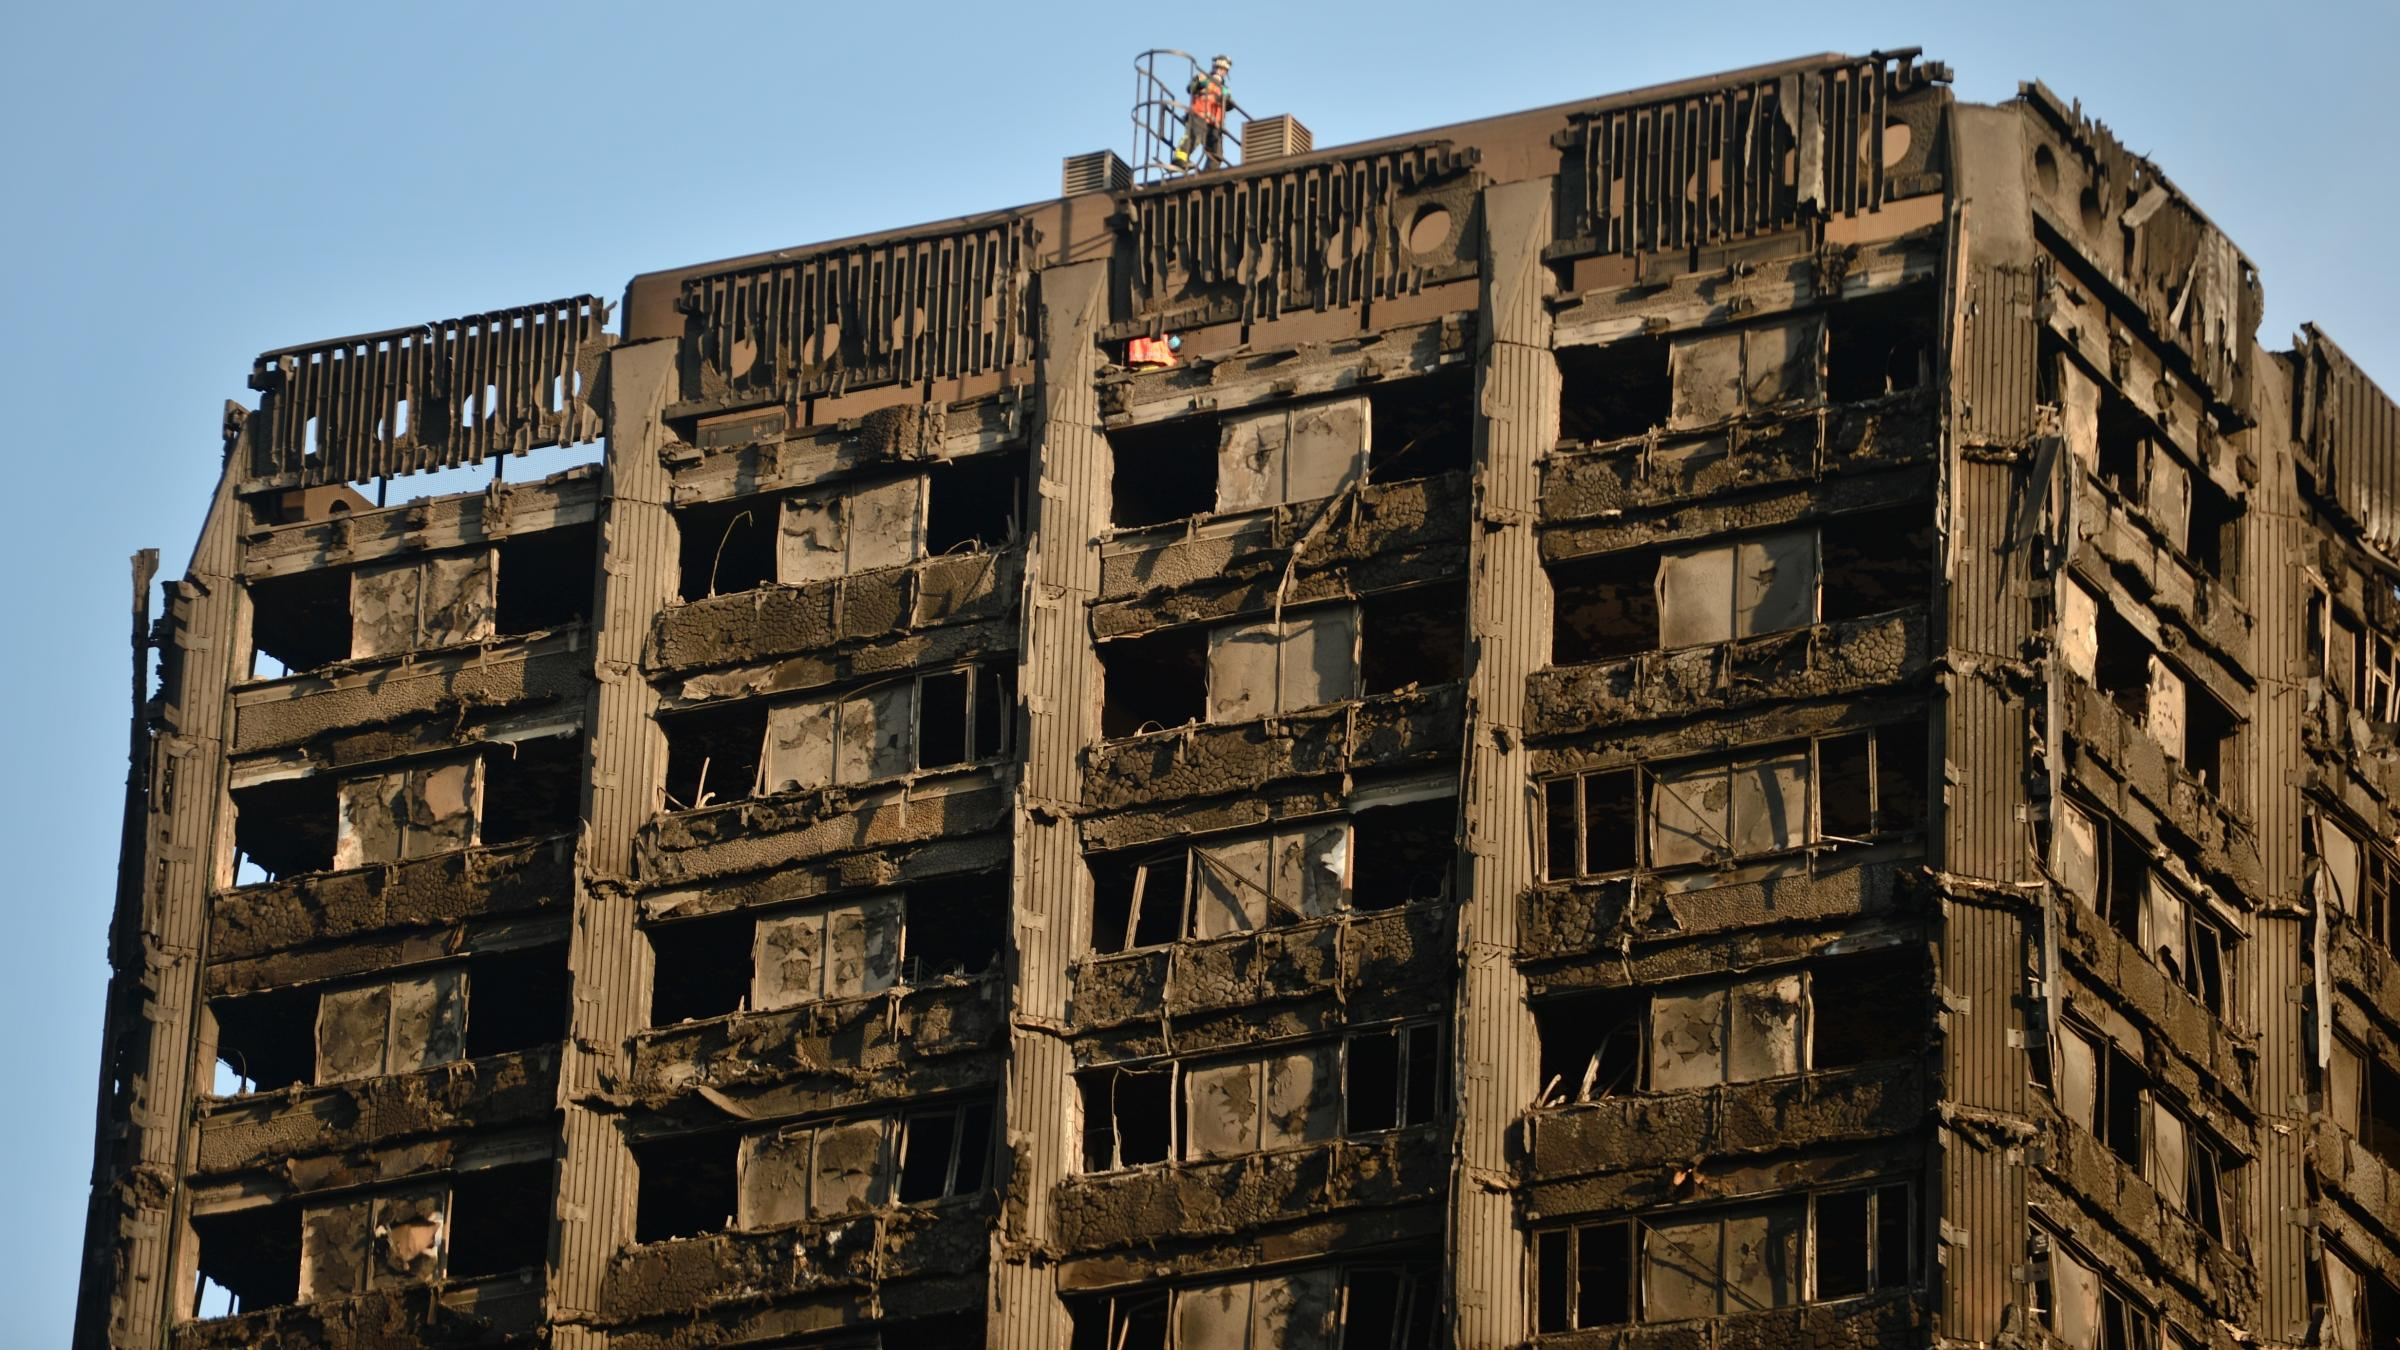 United Kingdom official: Fire building materials broke rules